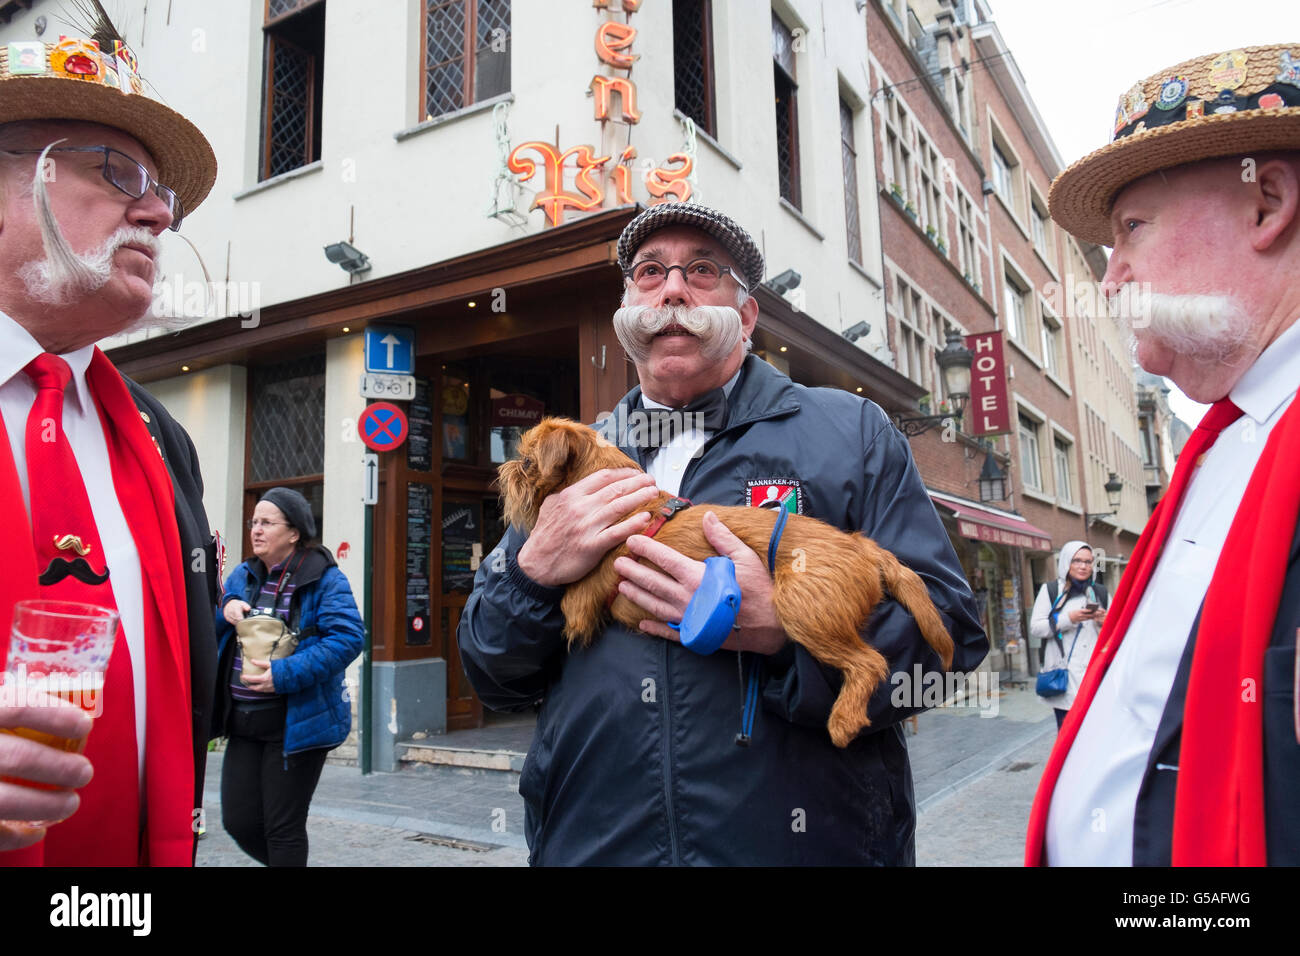 man moustache carries carry carrying dog arms hand - Stock Image